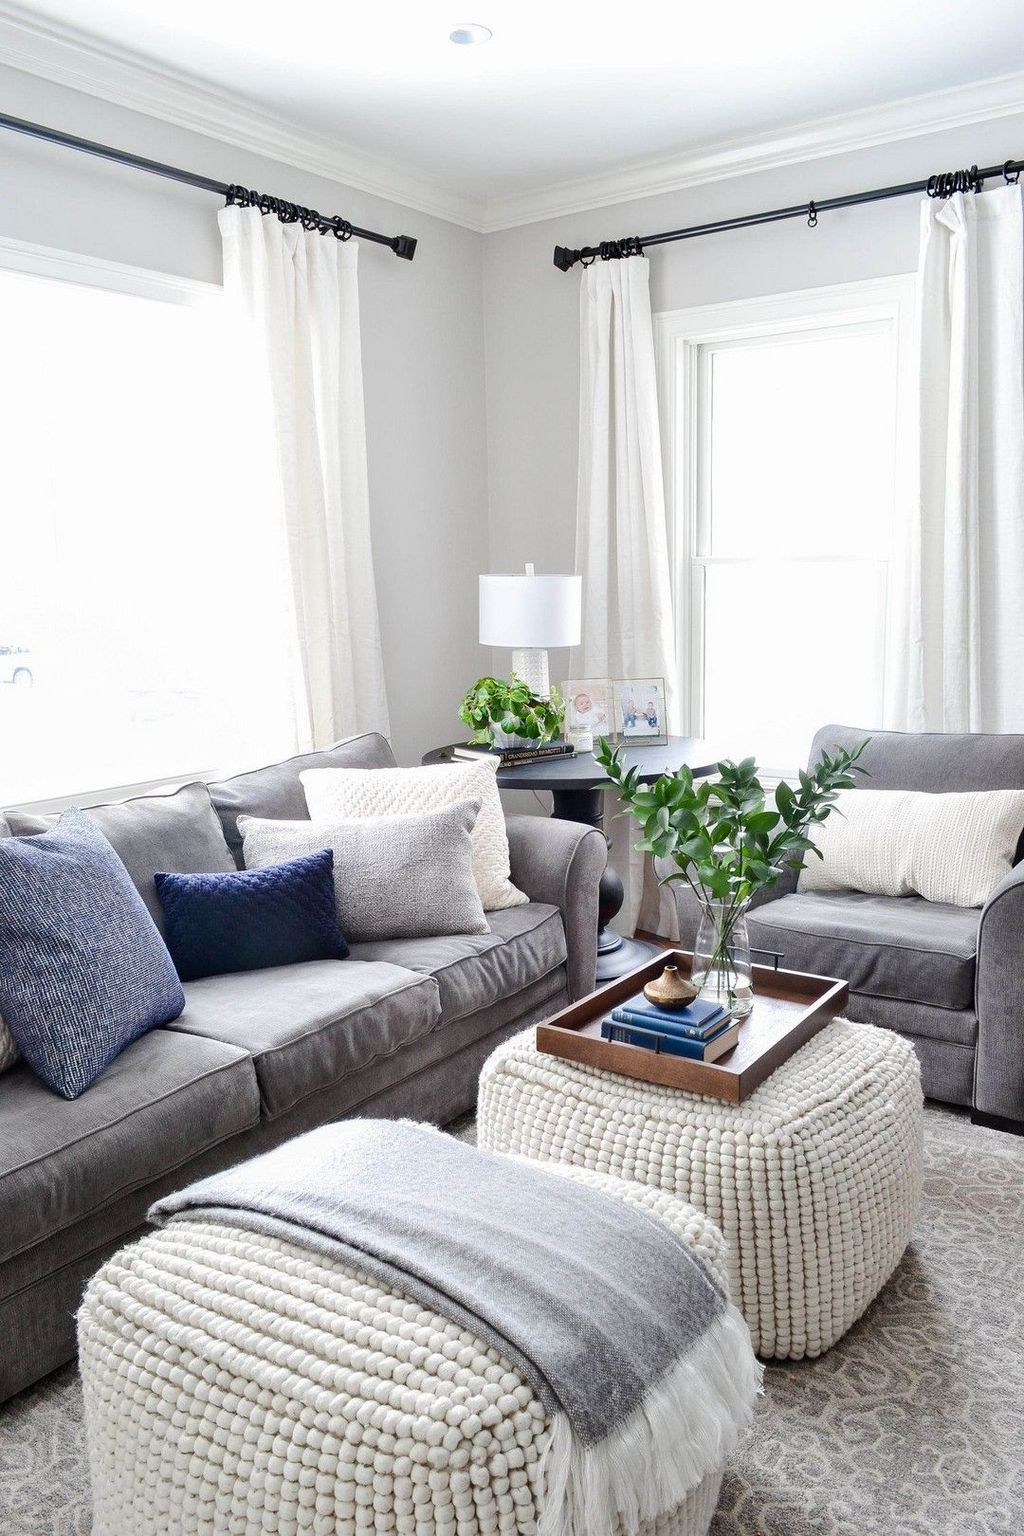 Awesome Minimalist Contemporary Living Room Decor Ideas 18